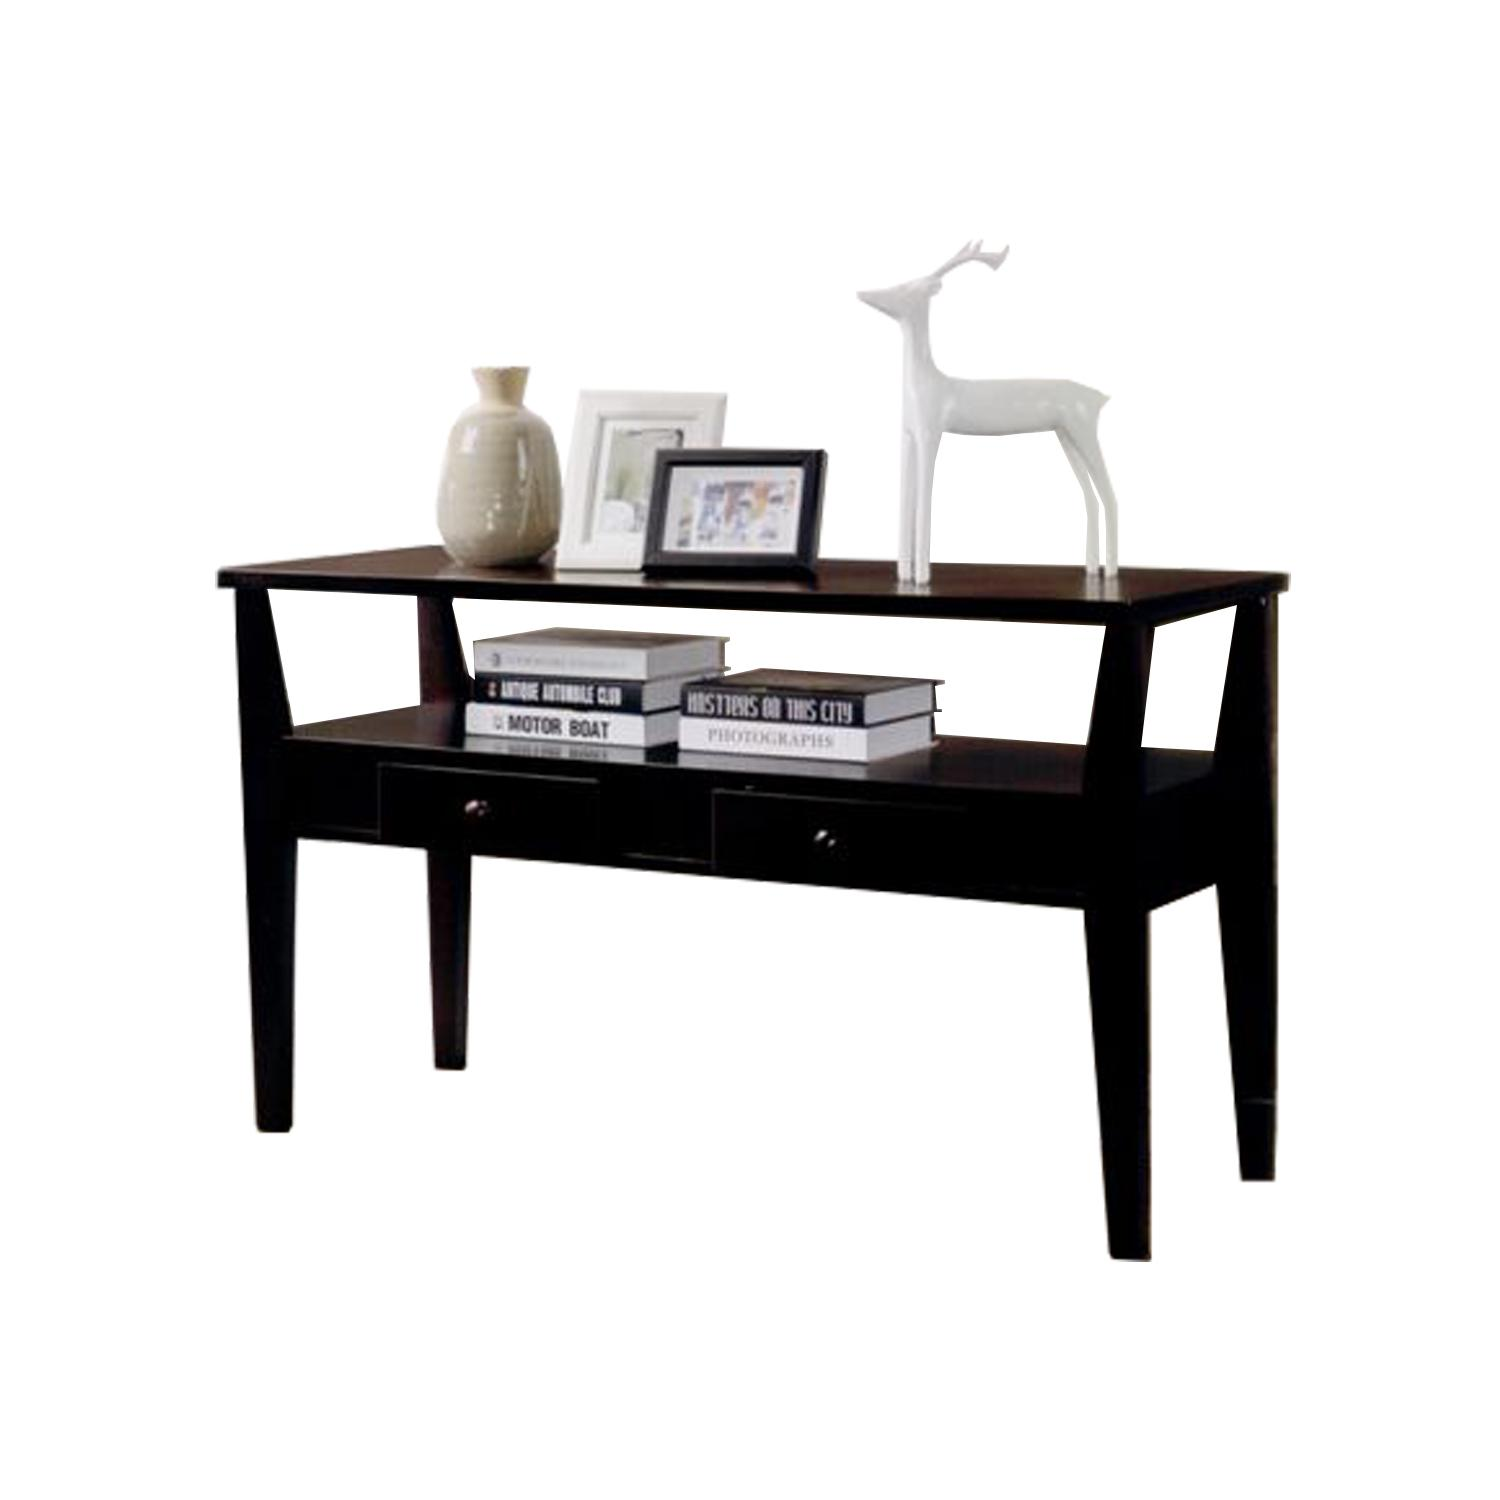 Beowulf Console Table By Living Mall.